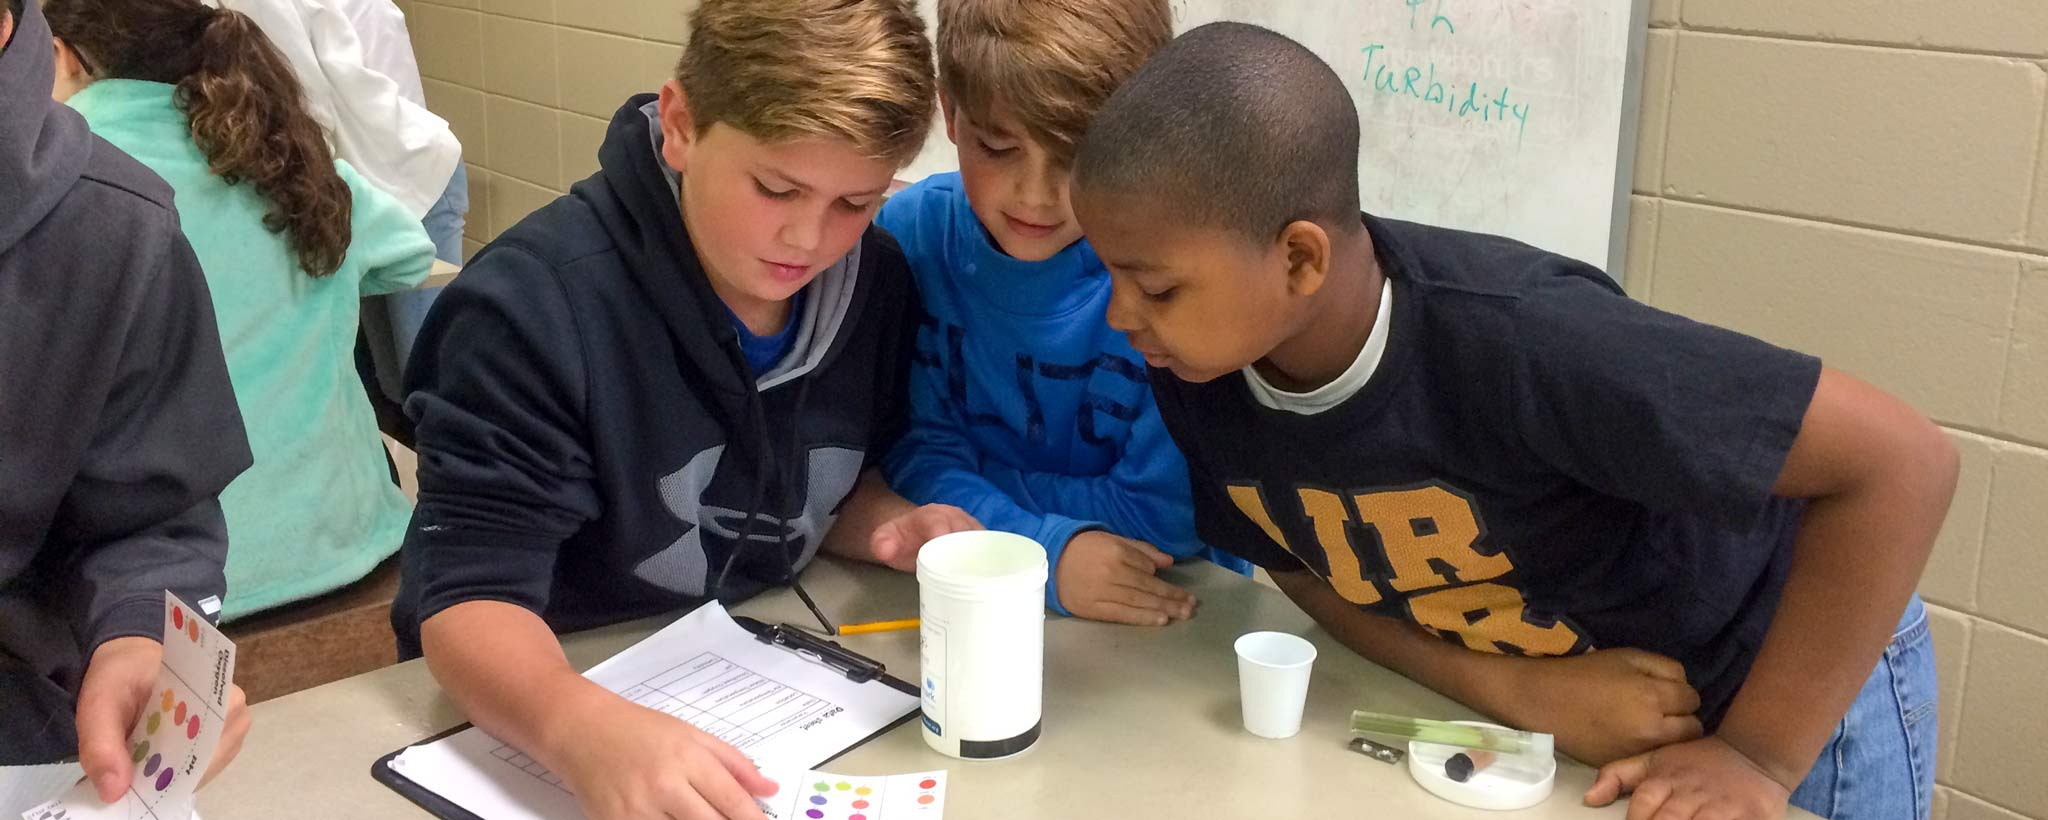 Kids doing experiments